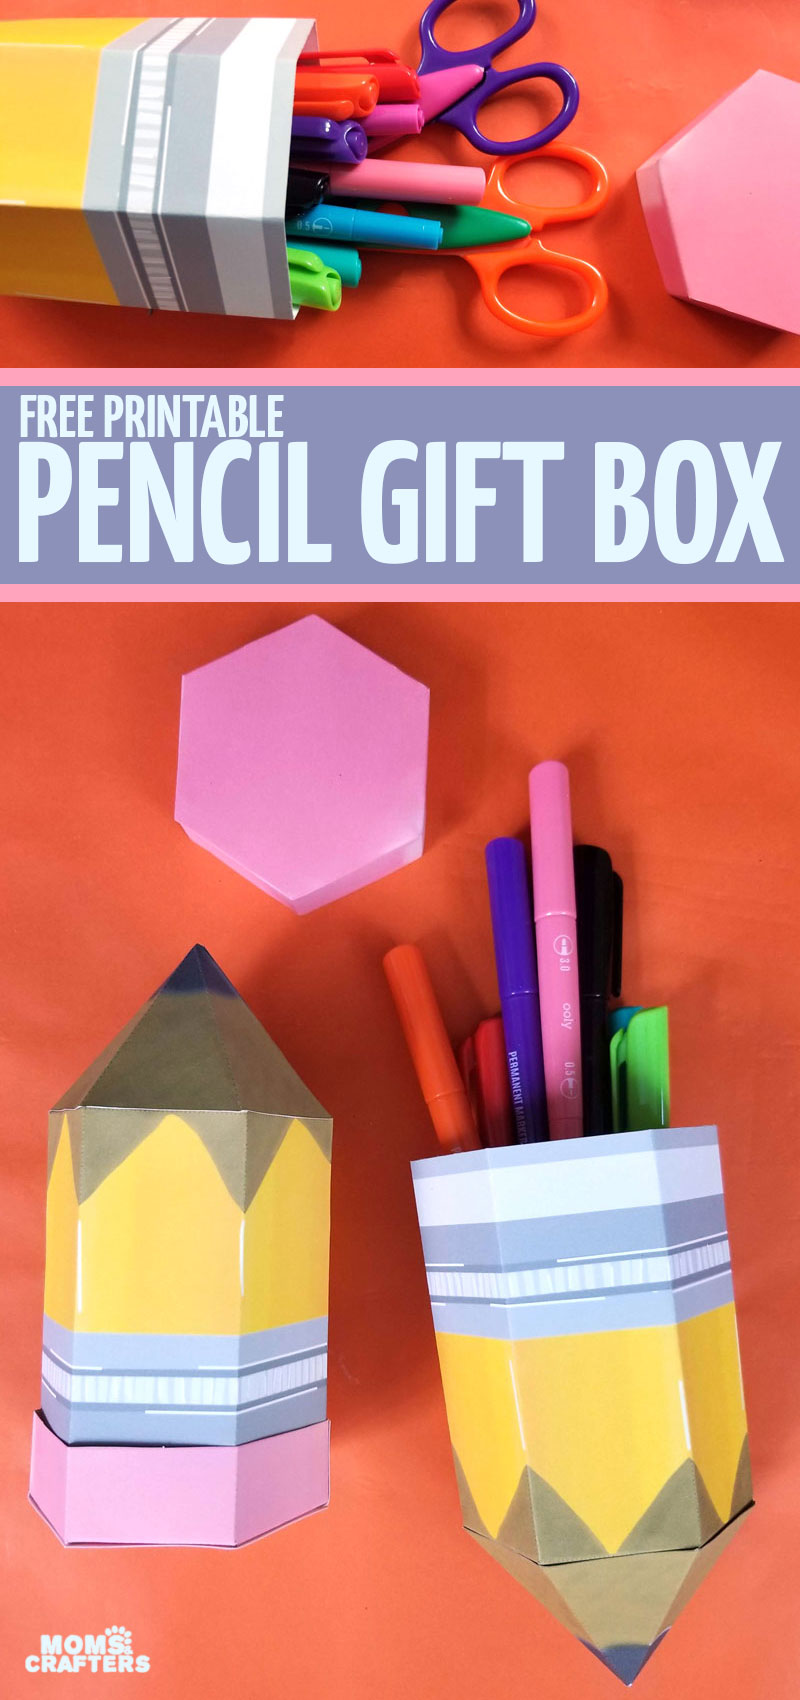 CLick for a free printable pencil box template! This can be great as DIY school supplies or a back to school treat - or even a party favor for an art themed party!